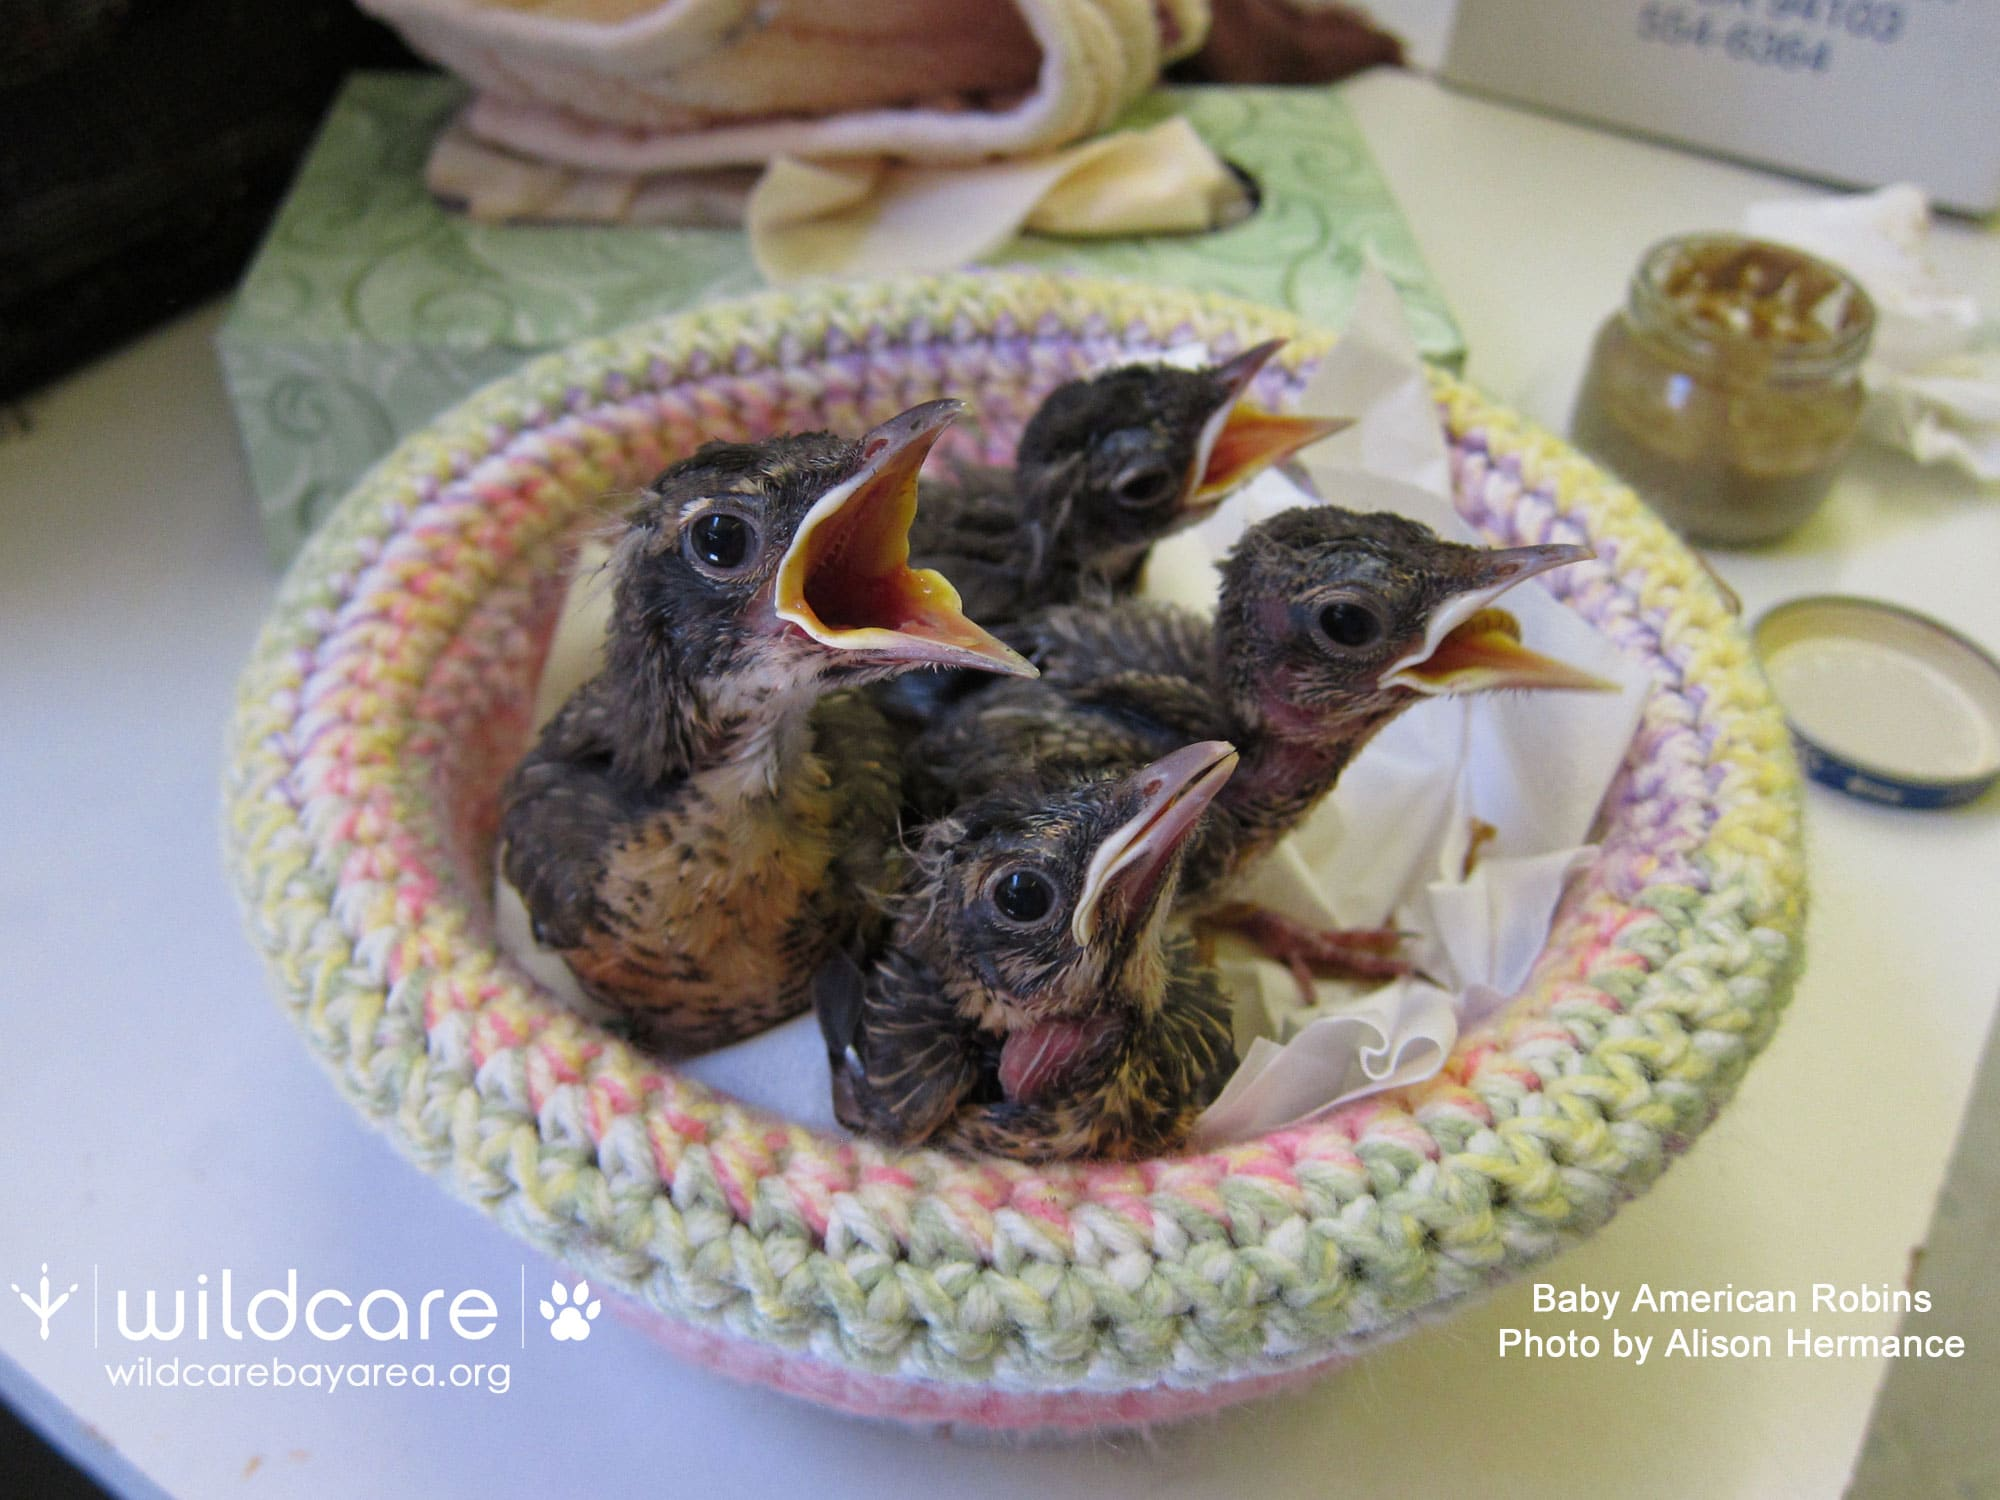 Baby robins at WildCare. Photo by Alison Hermance